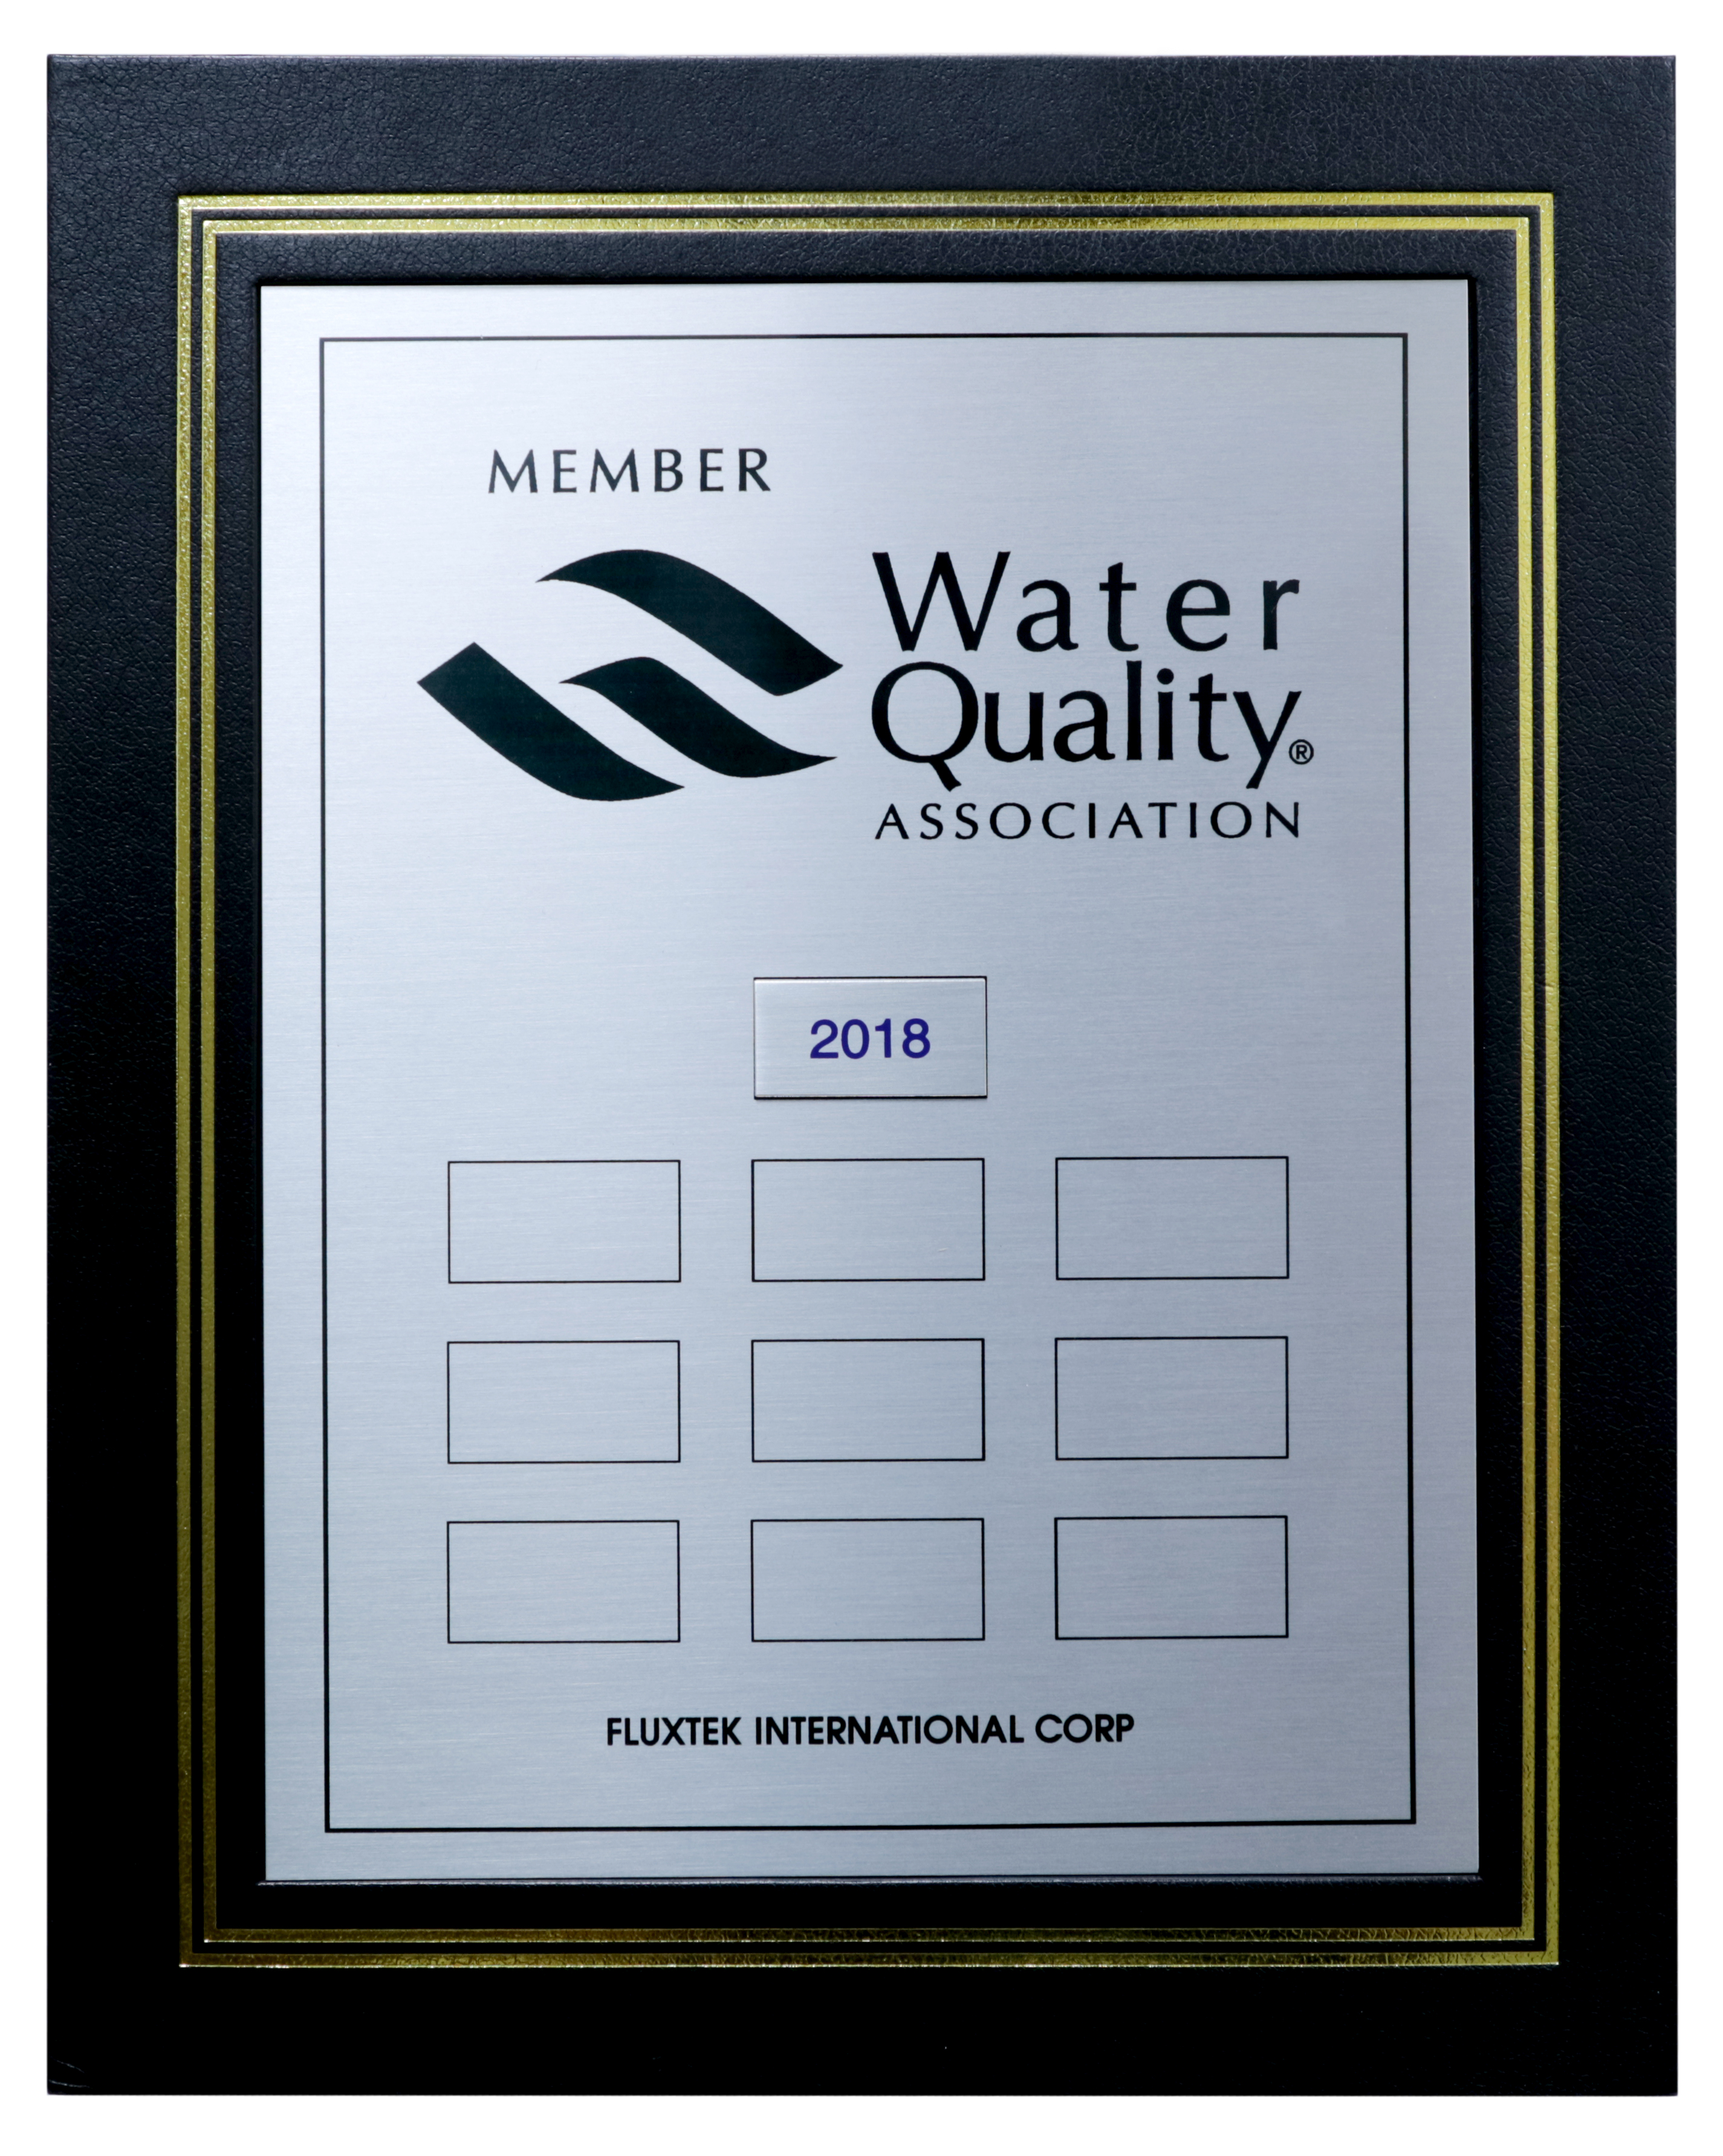 Water Quality Association 2018